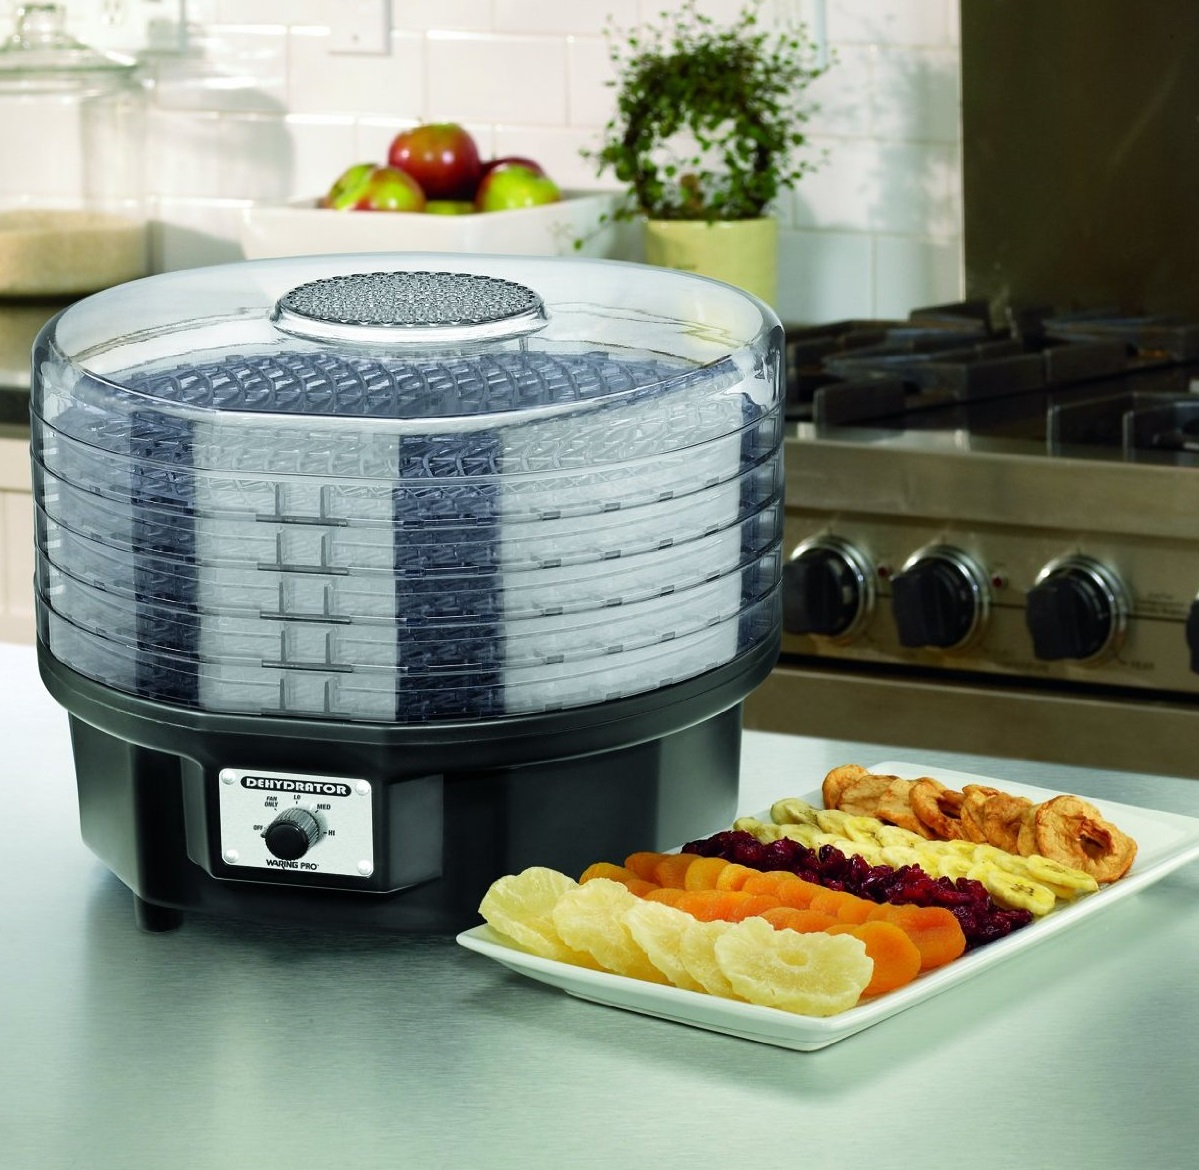 Waring Pro Food Dehydrator DHR30 with 5 Racks